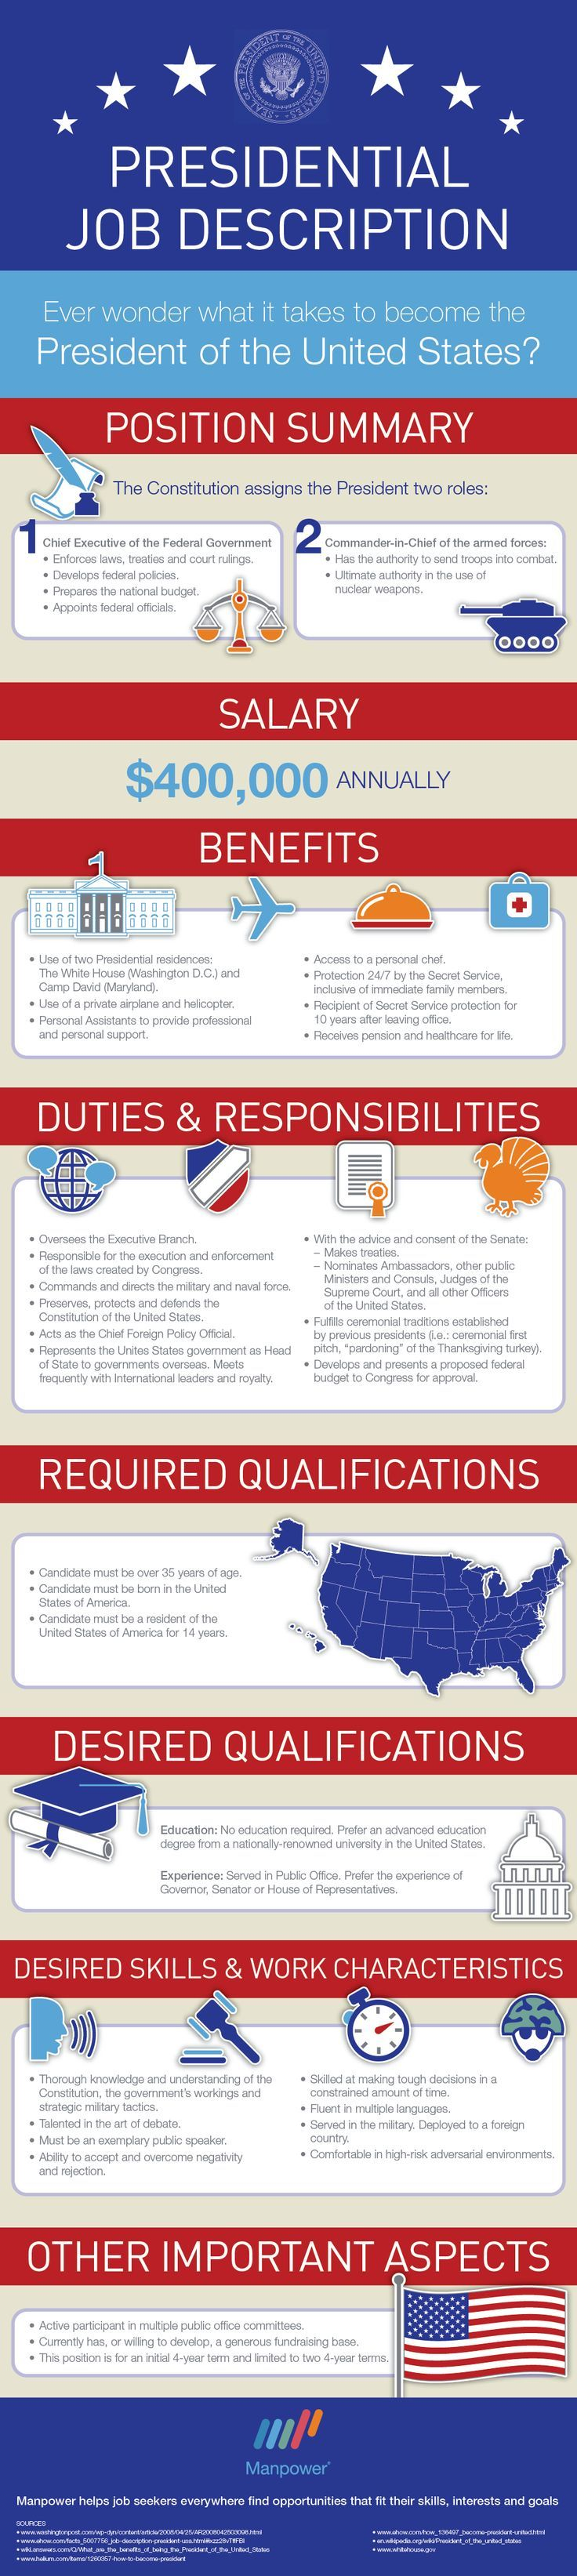 Do you have what it takes to be President of the United States? View the President's Job Description. From: http://manpowergroupblogs.us/manpower/career-coach/2012/10/24/do-you-have-what-it-takes-to-be-the-president-of-the-united-states/ #infographic